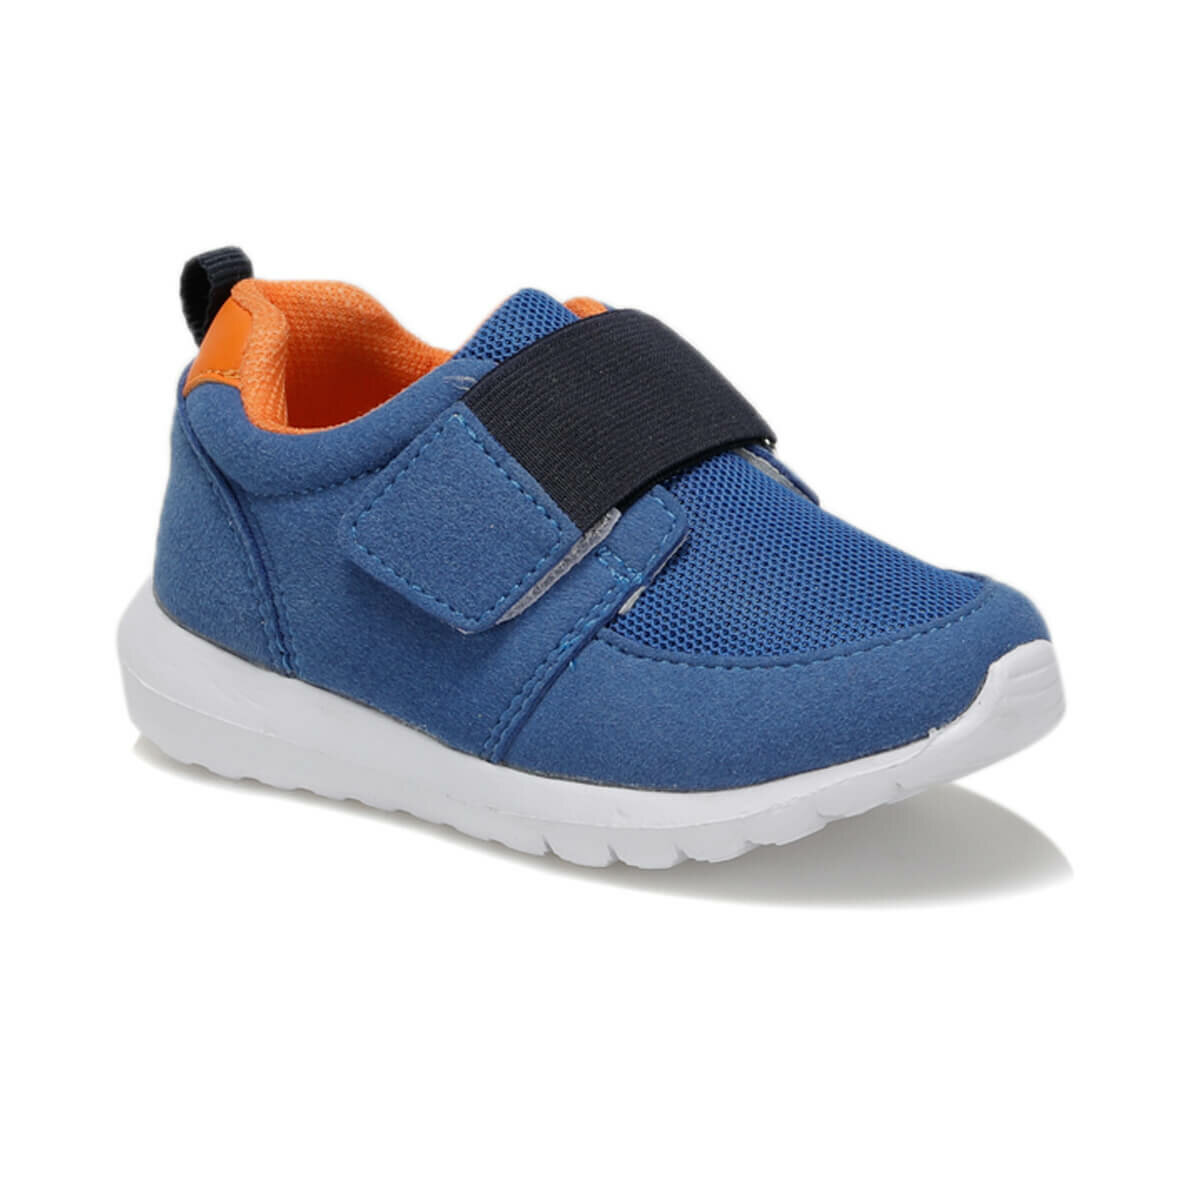 FLO LAKE Blue Male Child Sneaker Shoes I-Cool